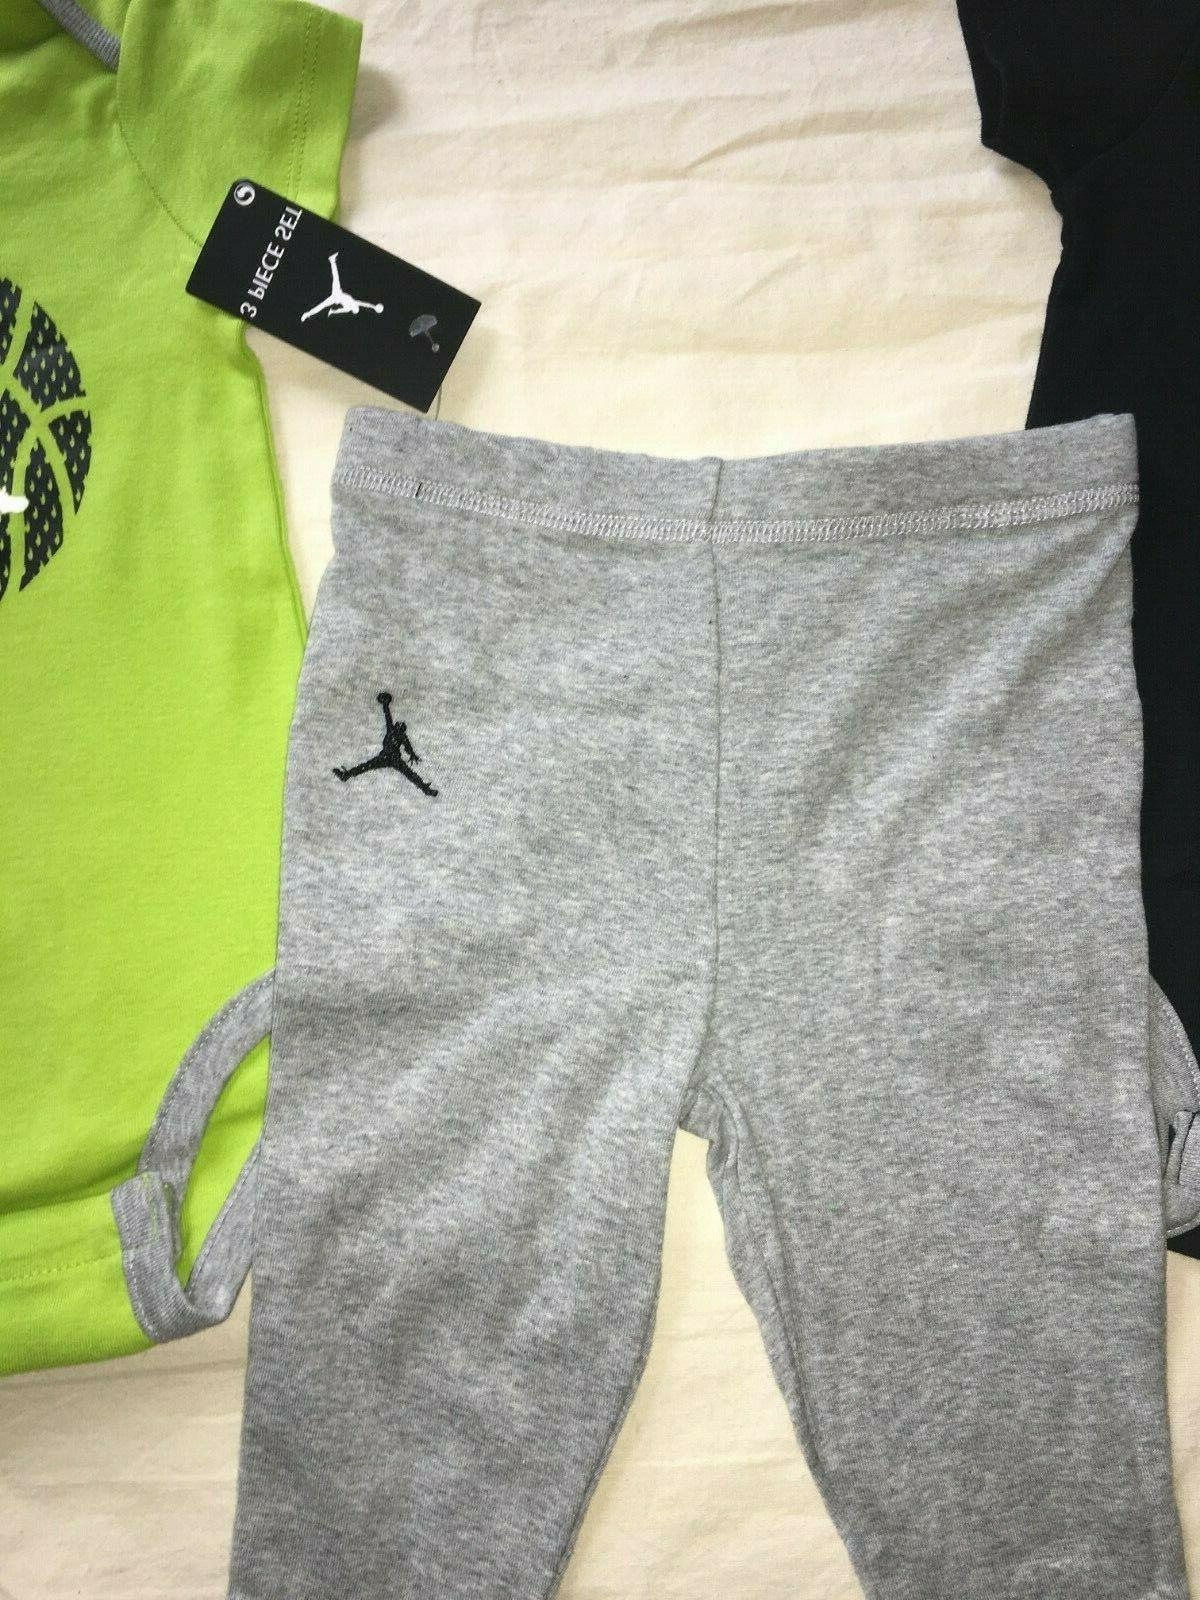 NIKE BABY BODYSUIT SHIRT PANTS SET OUTFIT MONTHS